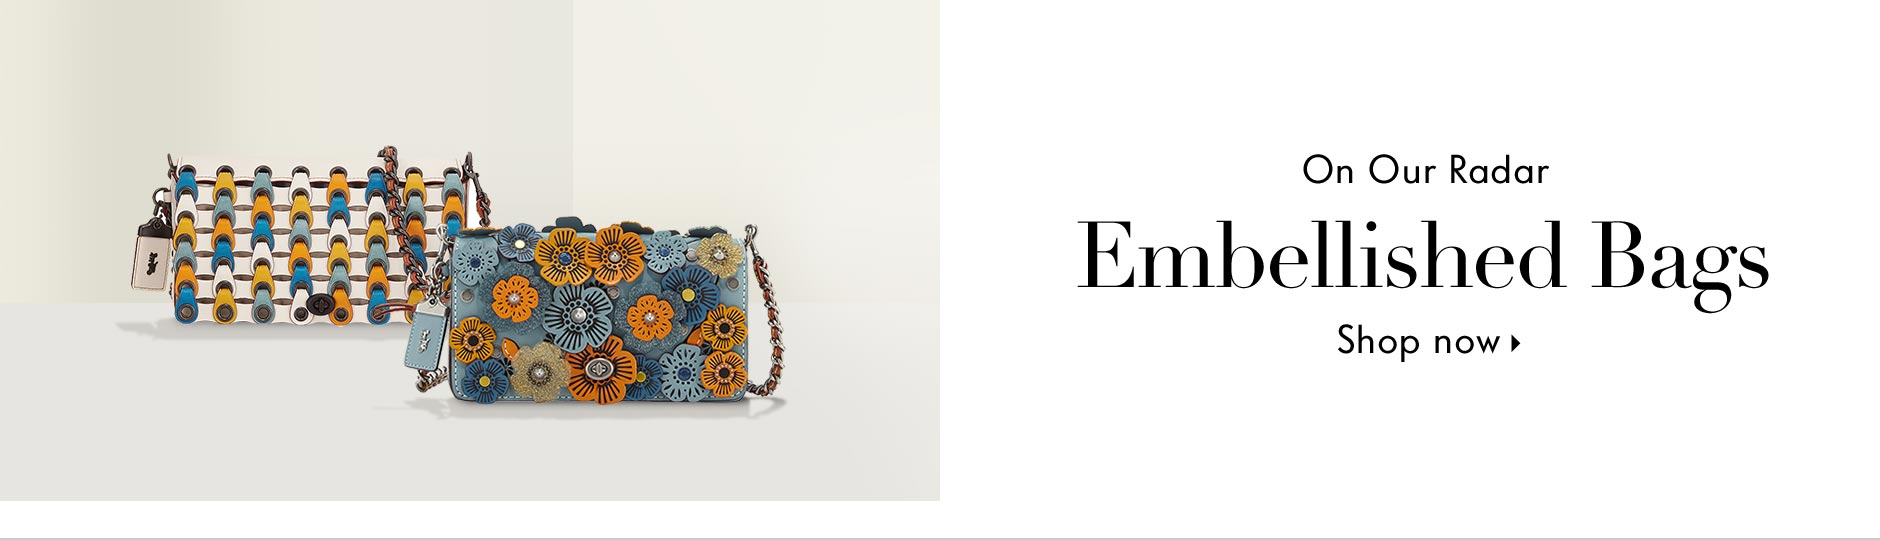 Pre-Fall 2017 - On our radar: Embellished bags